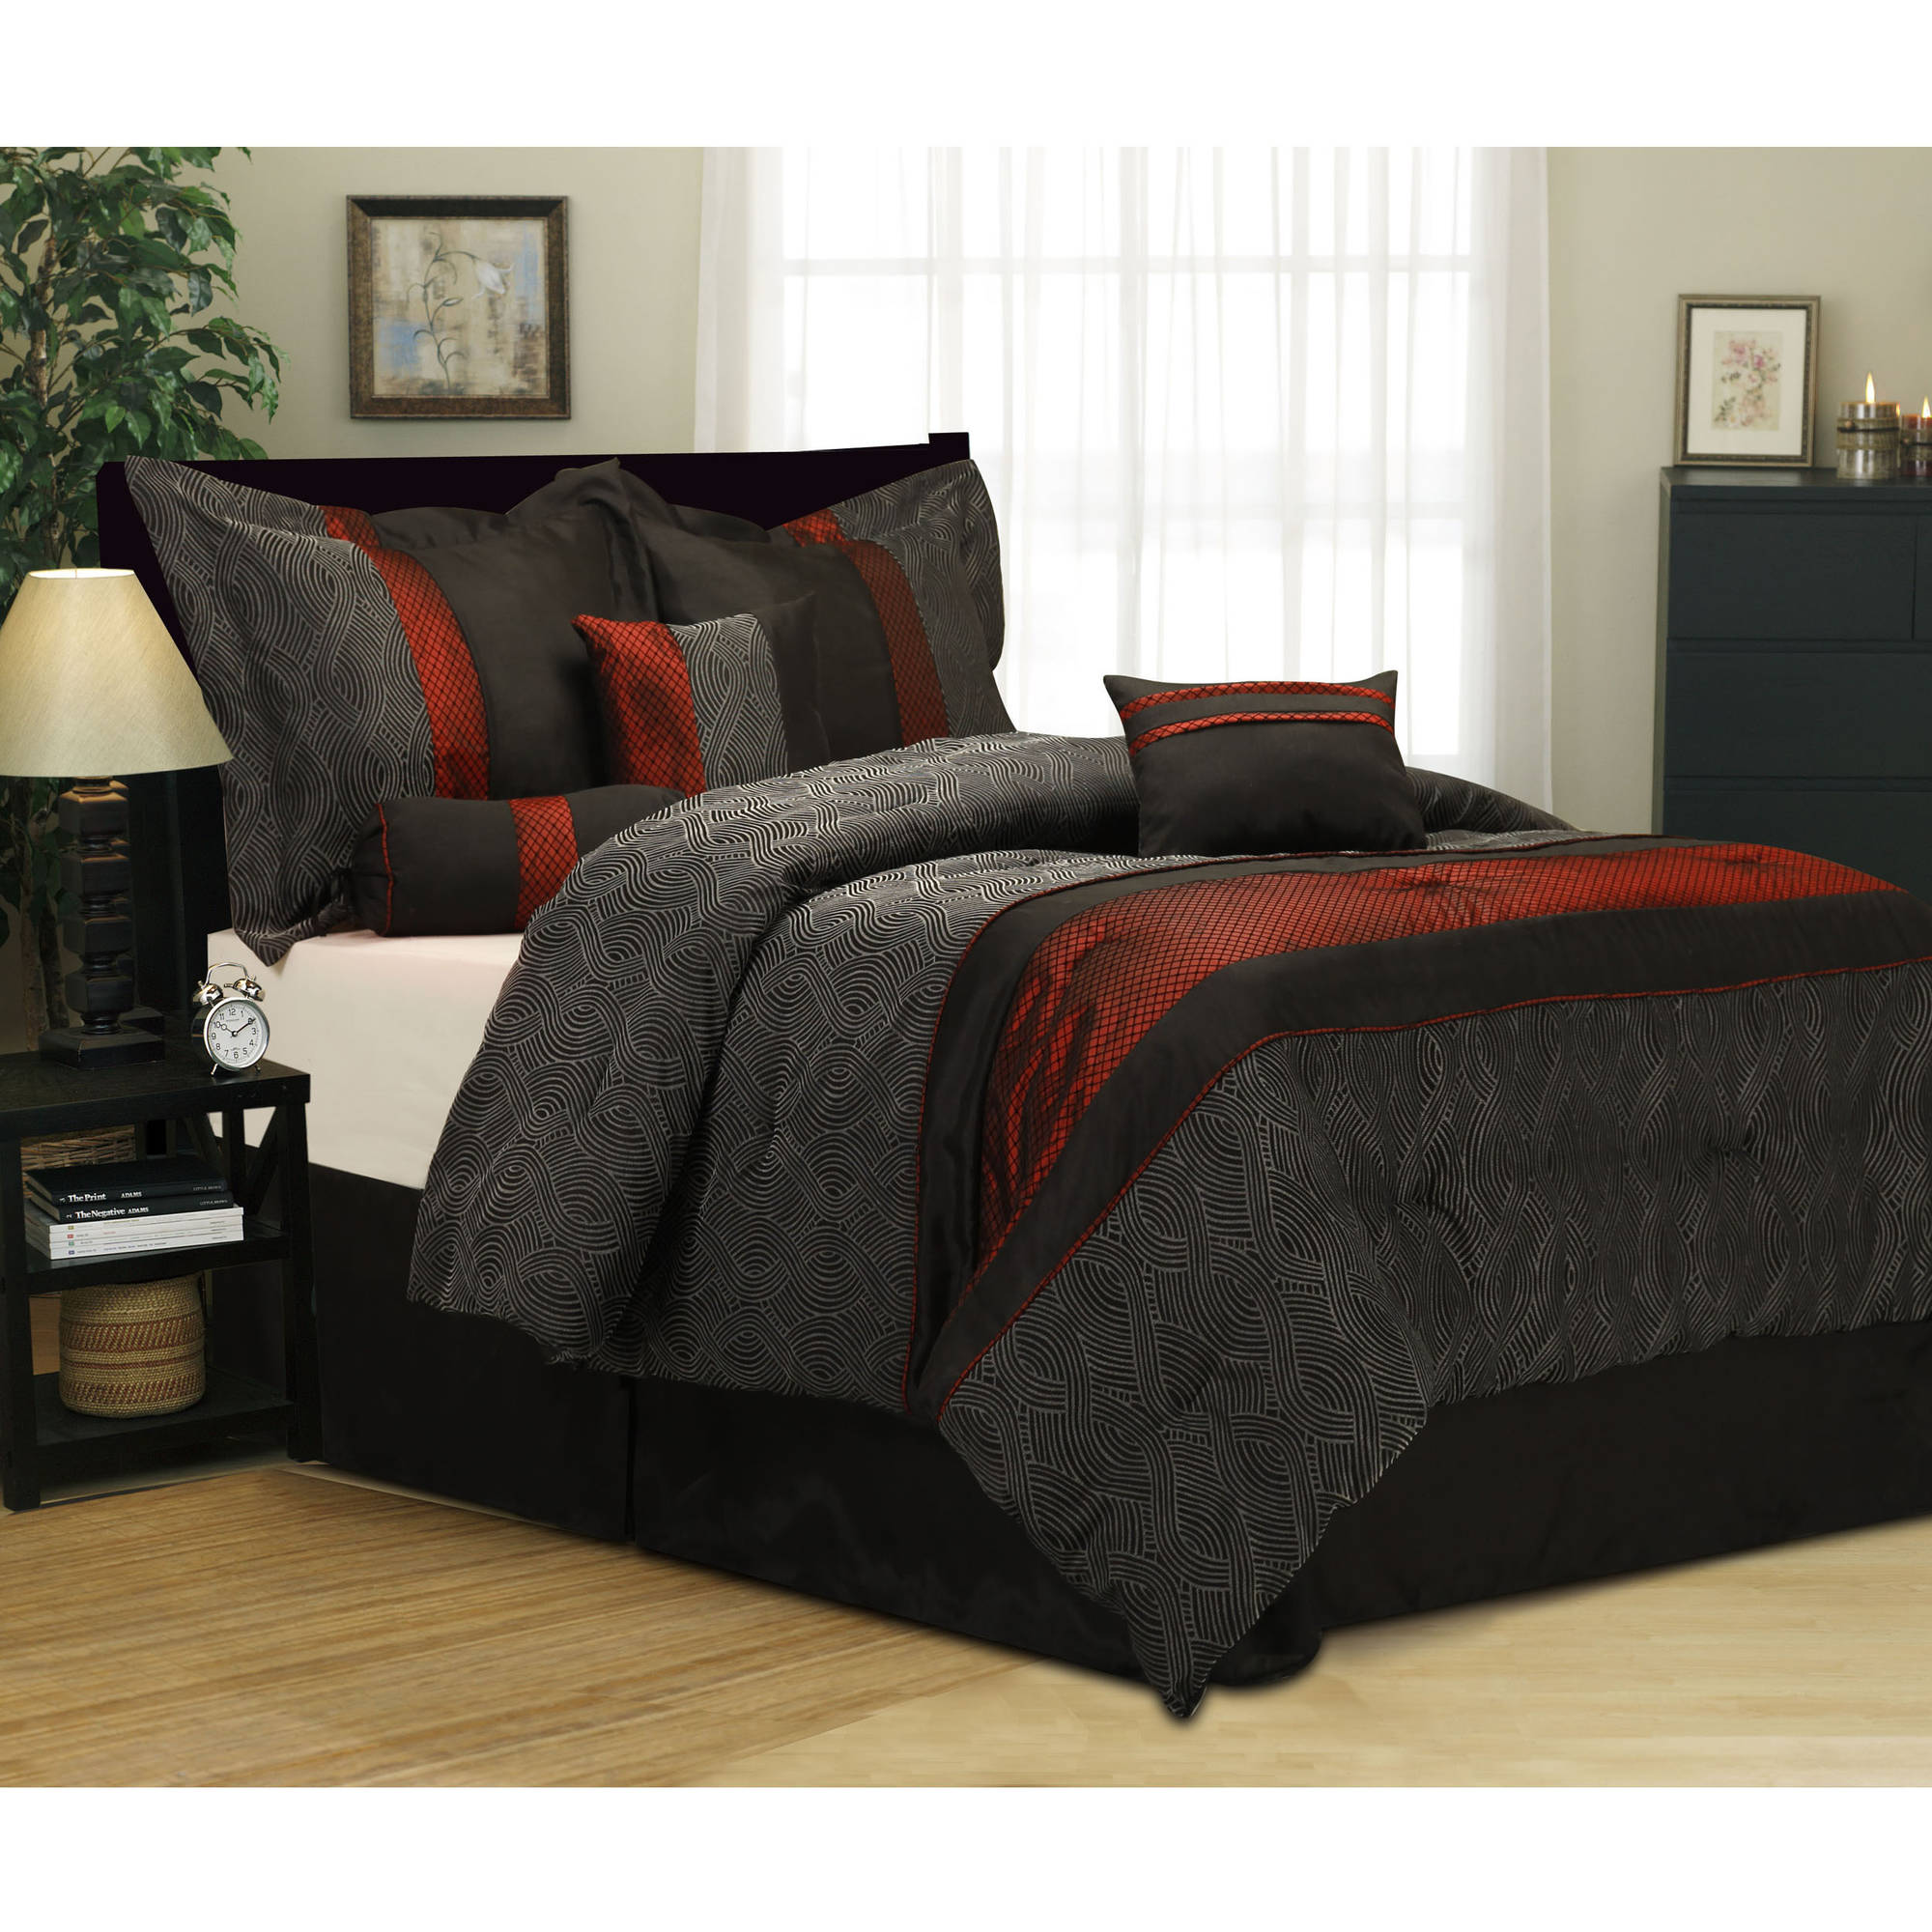 details about 7 piece bedding comforter set queen size black red shams pillows bedskirt room